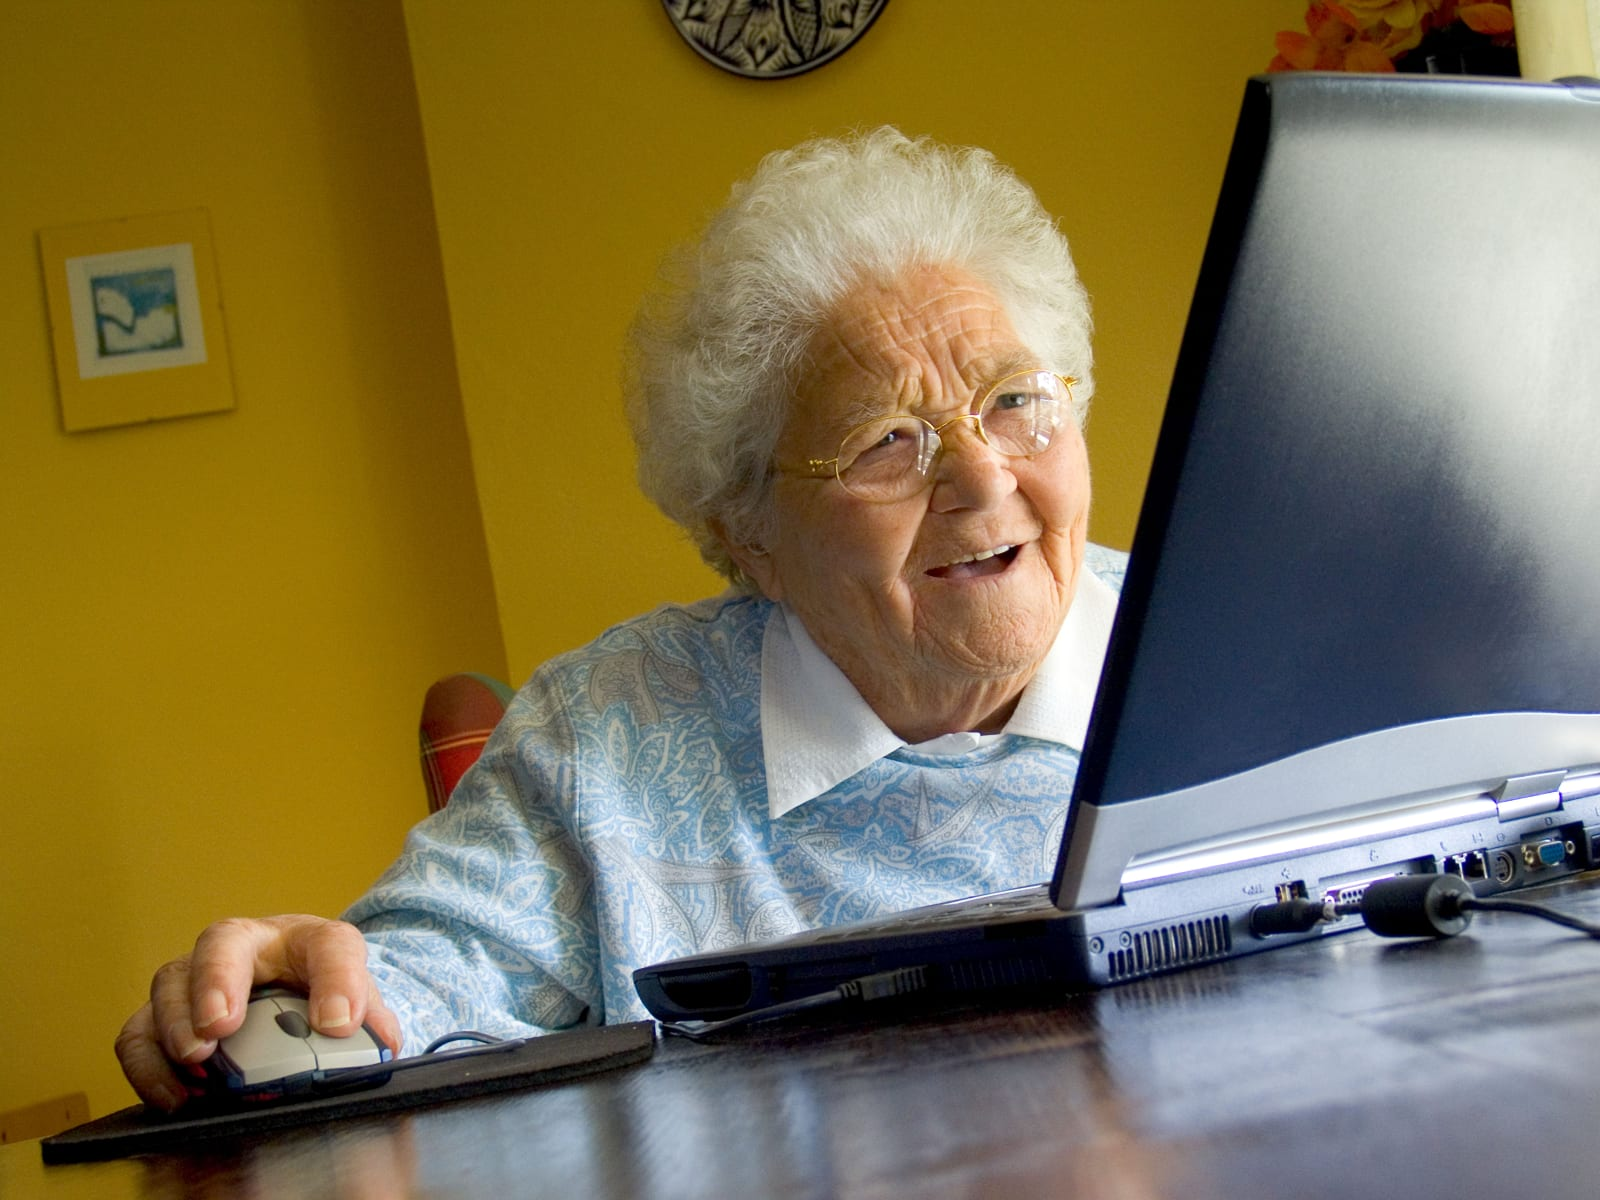 Senior elderly lady at home using her new laptop computer and its technology